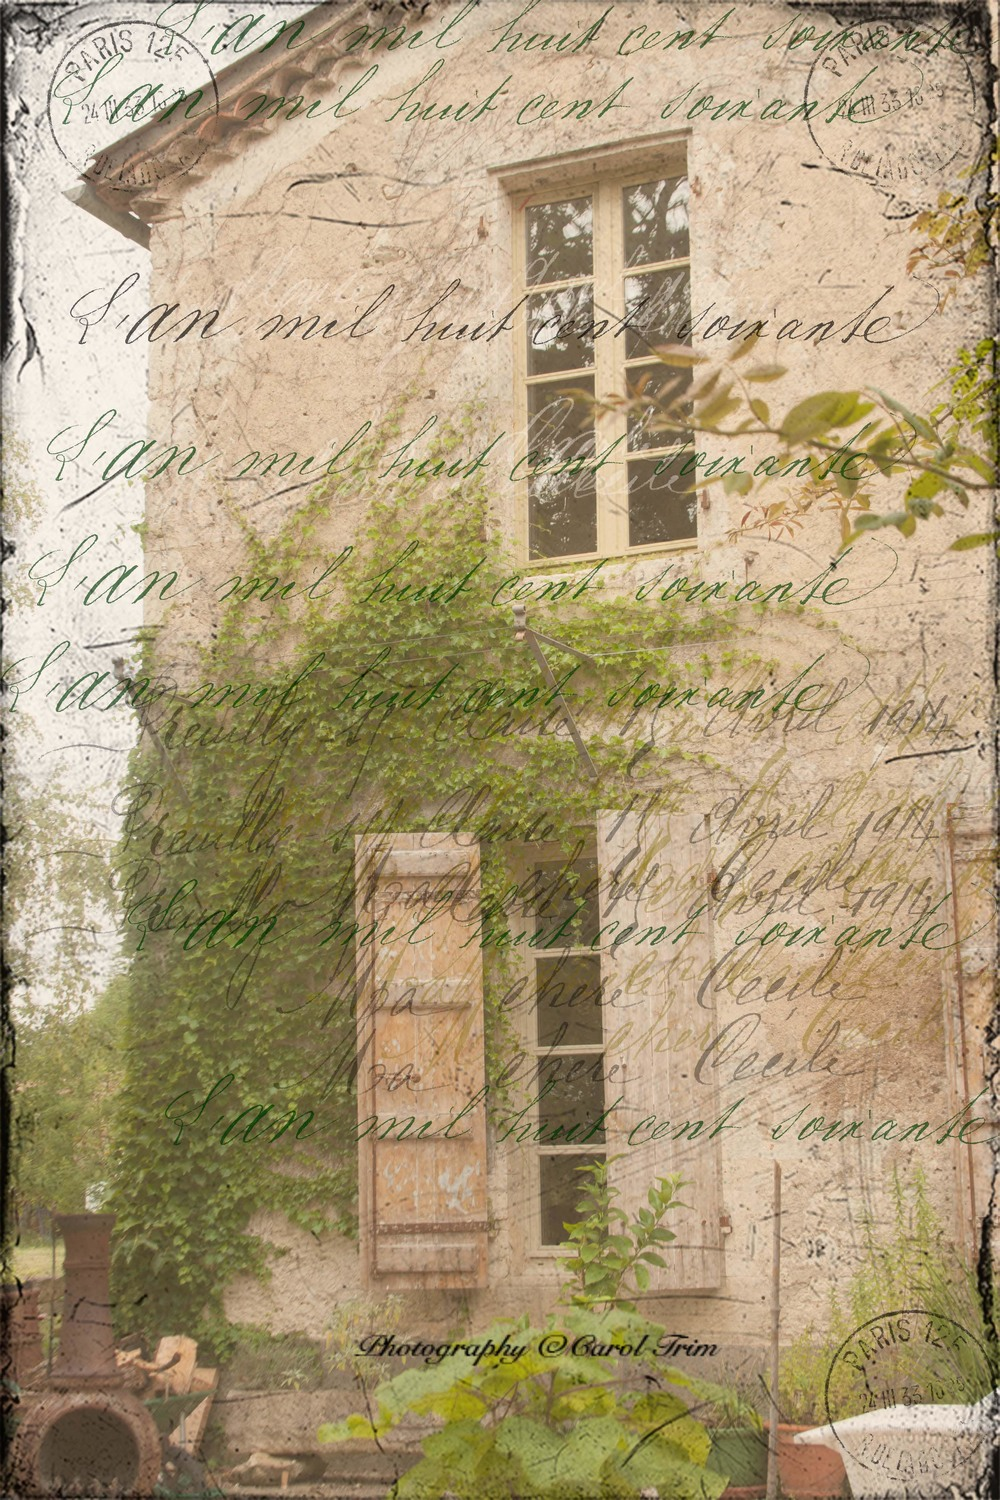 House with french text